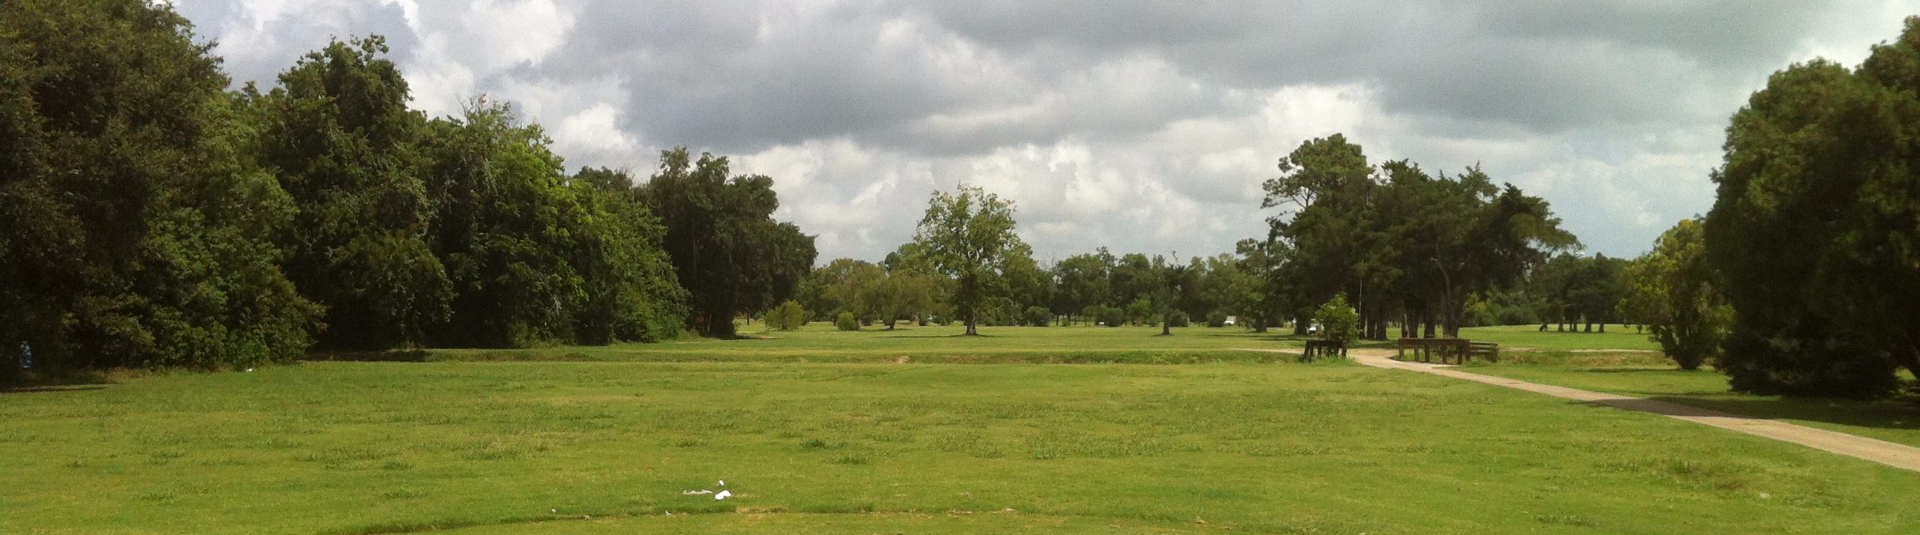 A gloomy day on the course at Hillcrest Golf Club